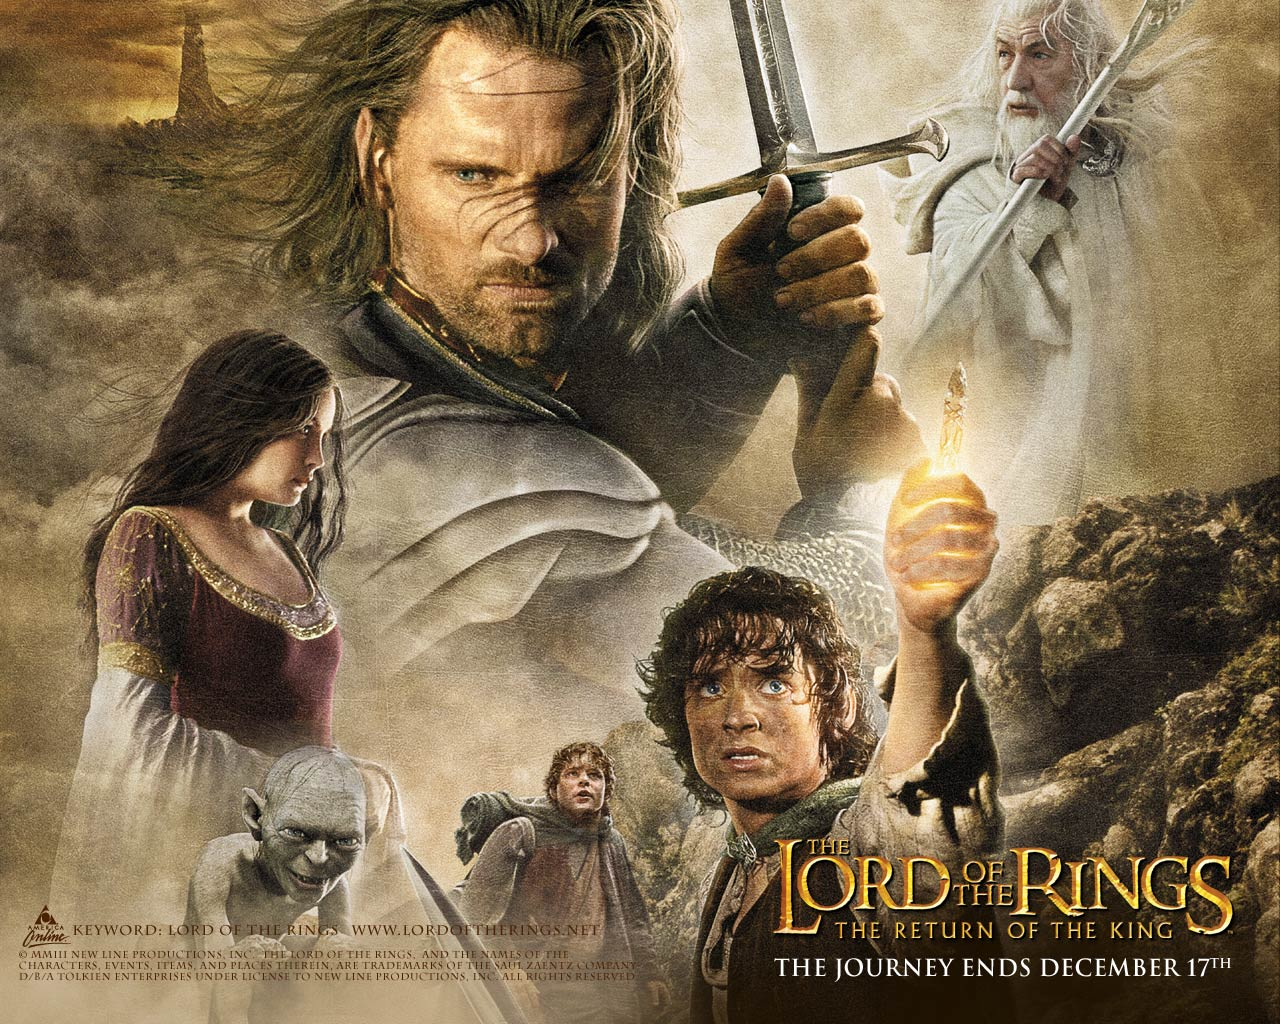 http://4.bp.blogspot.com/-M_OJNSud6Wk/Tok8UW5EvGI/AAAAAAAAAko/wzkN5N6lULQ/s1600/The-Lord-of-the-Rings-Wallpapers_the_return_of_the_king%252C_viggo_mortensen_%2528aragorn%2529.jpg